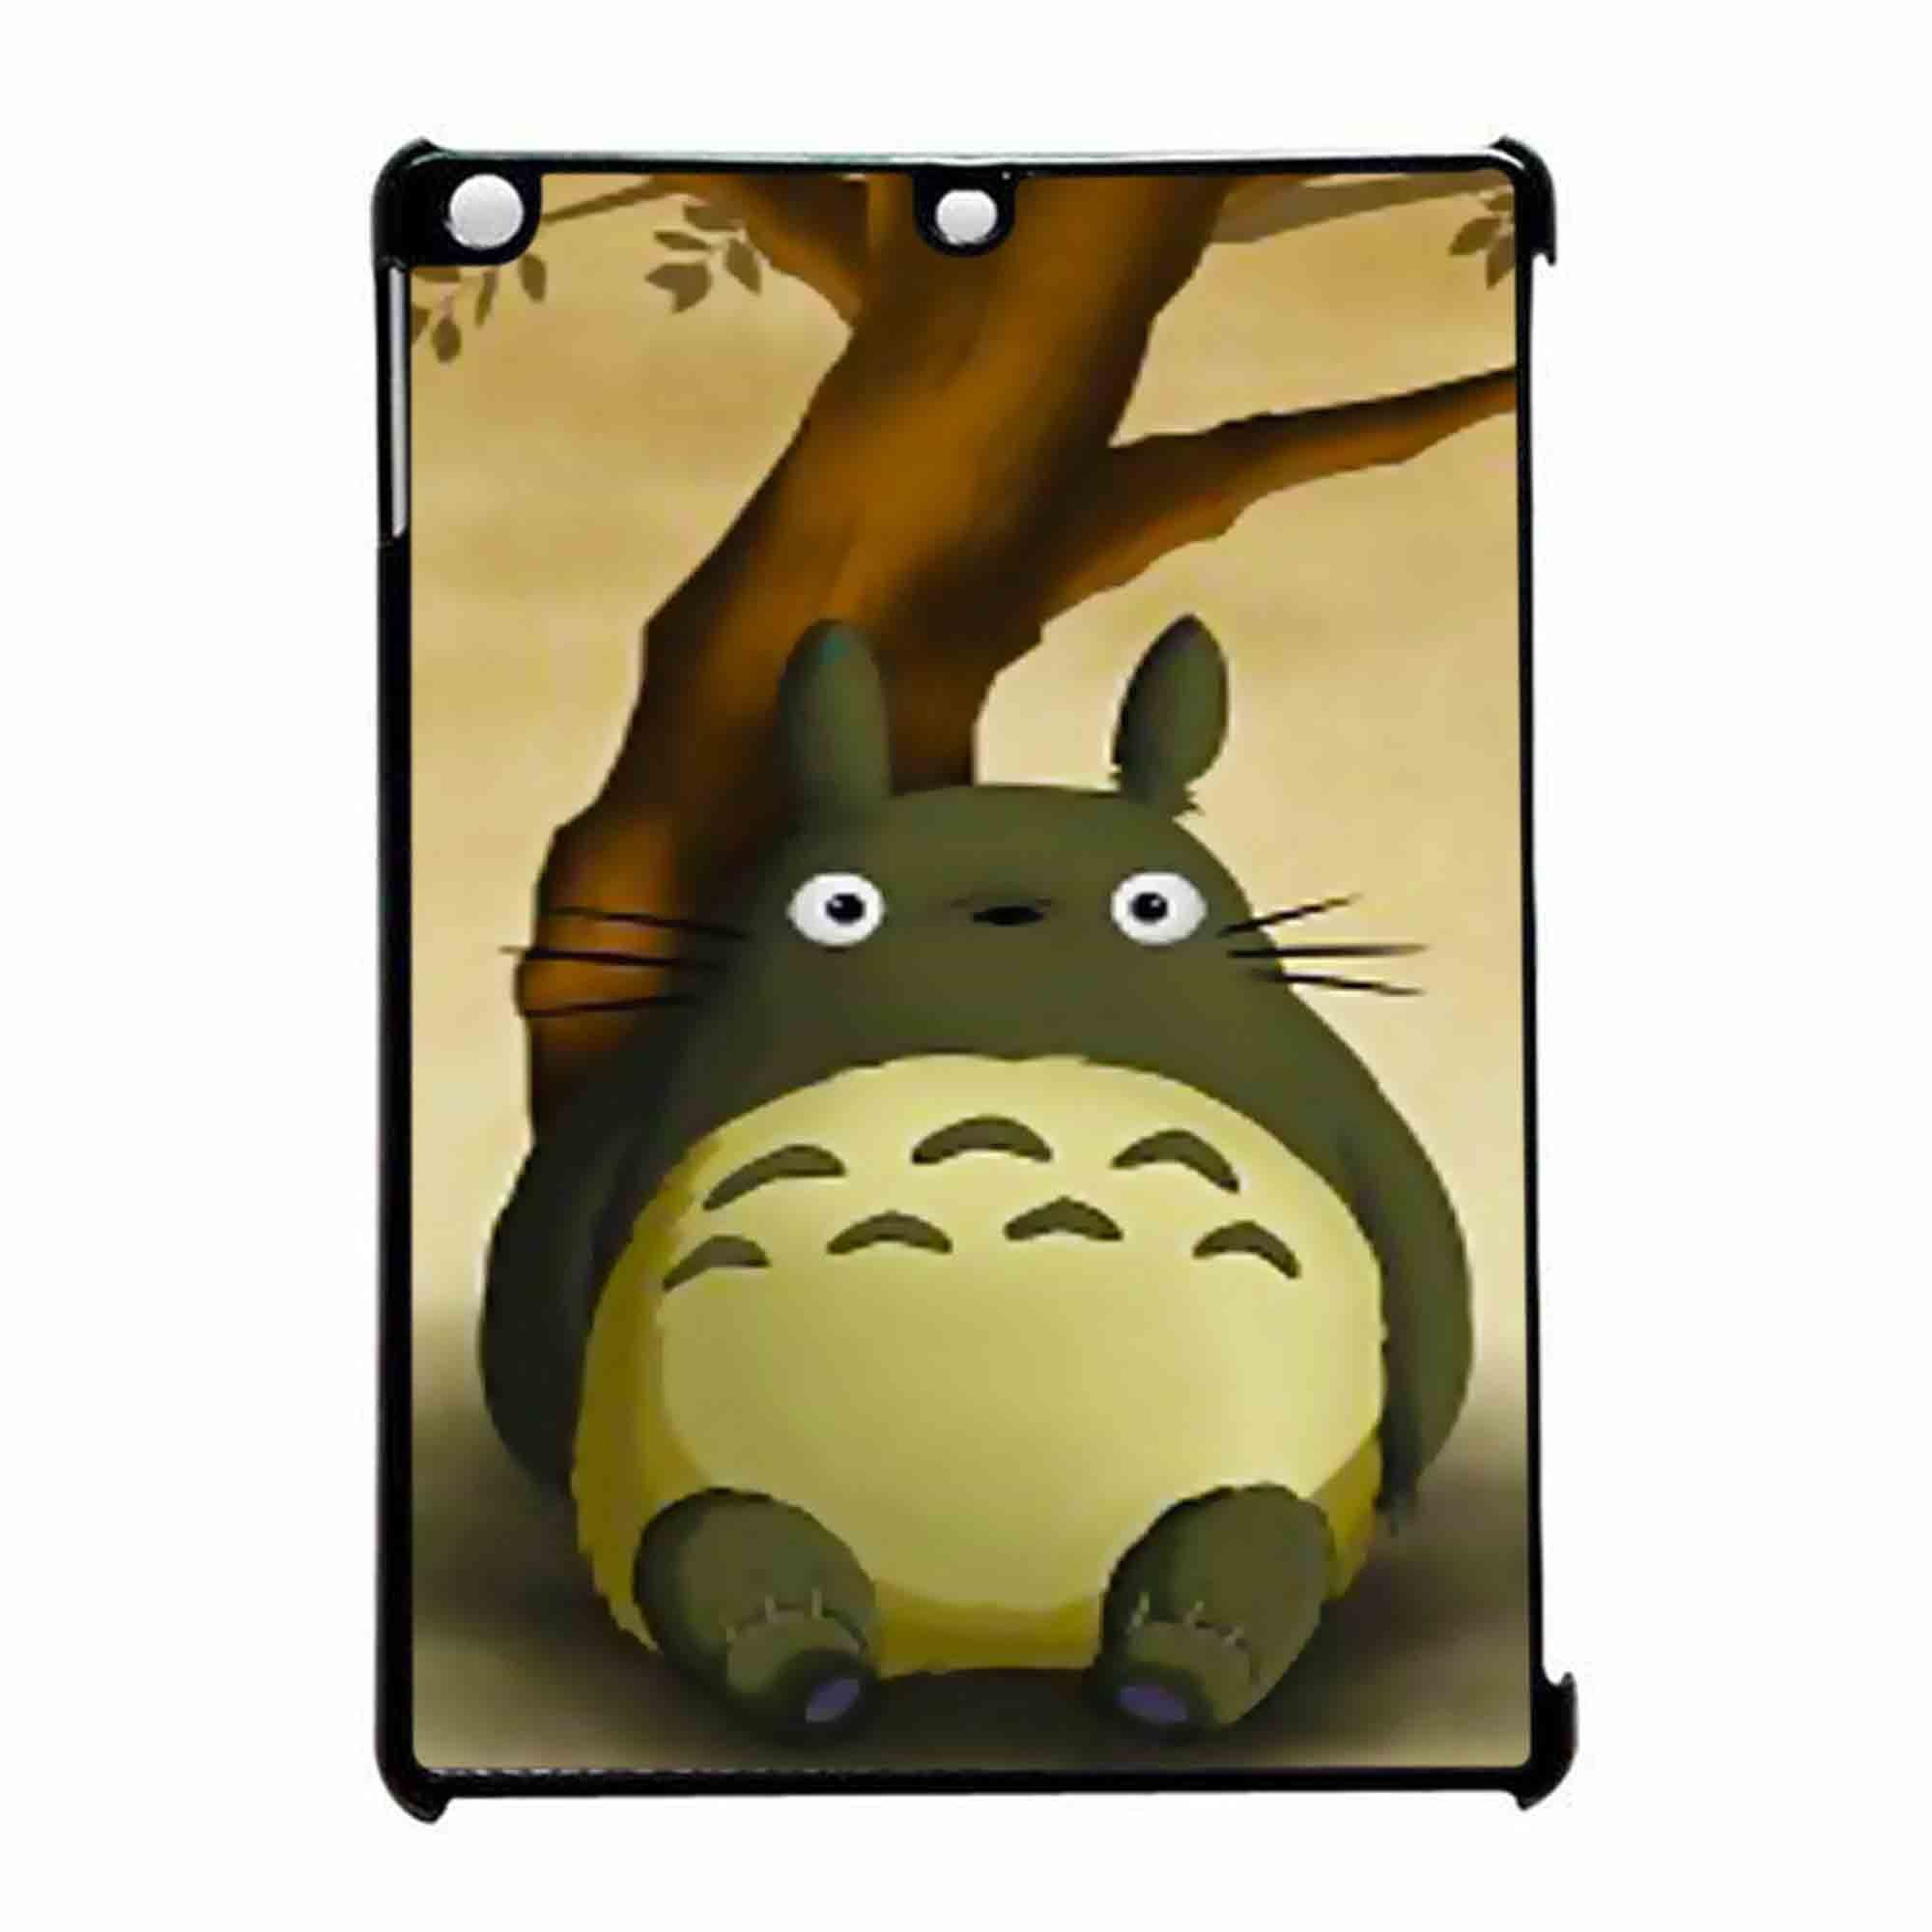 My Neighbor Totoro 9 iPad Air Case | Products | Pinterest | Ipad air ...